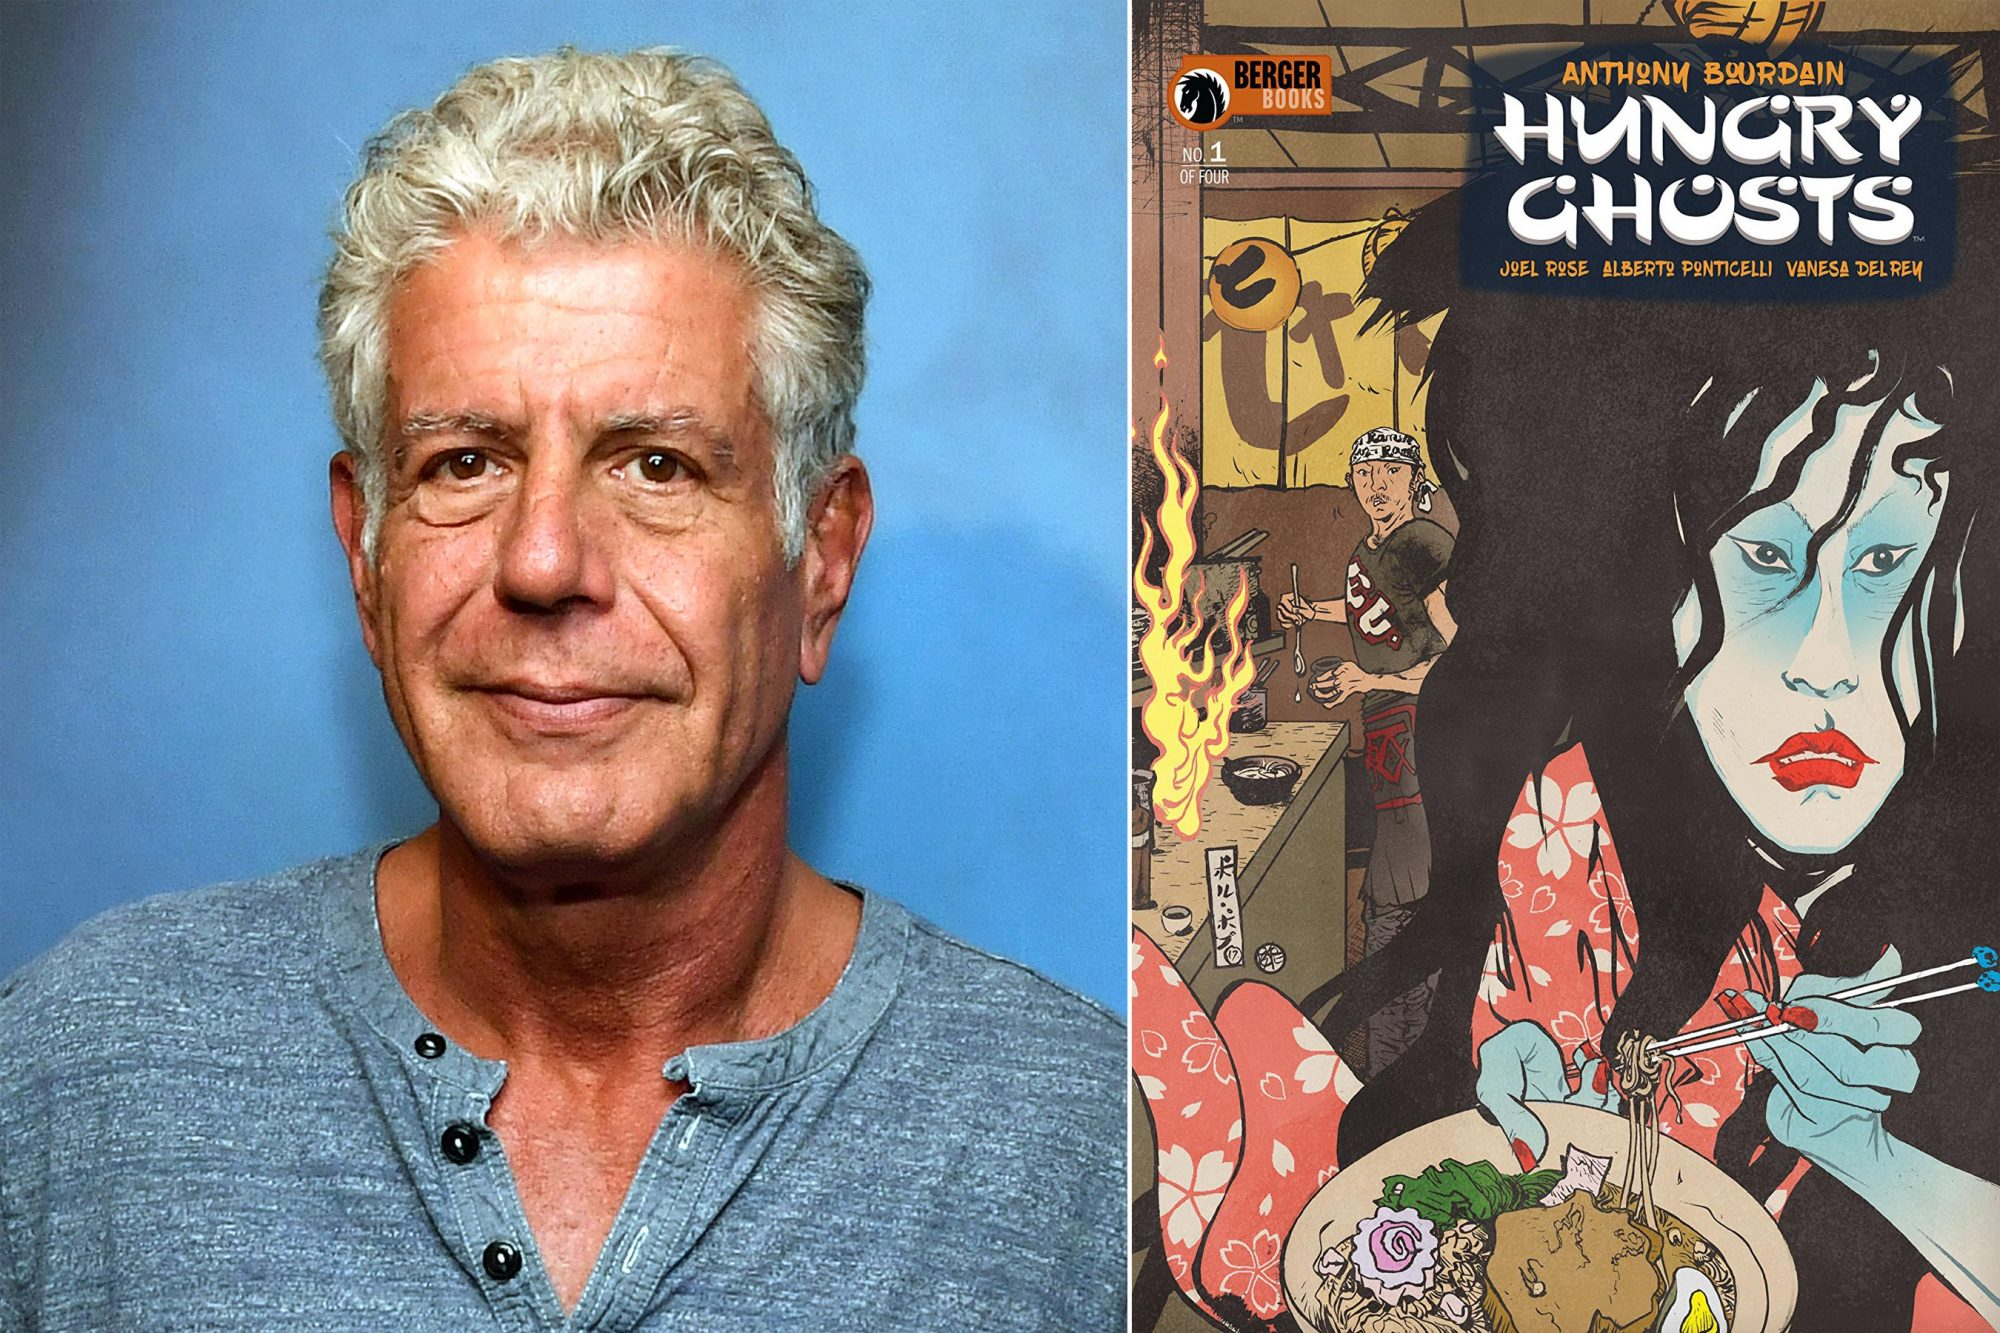 Remembering Anthony Bourdain's tremendous literary talent